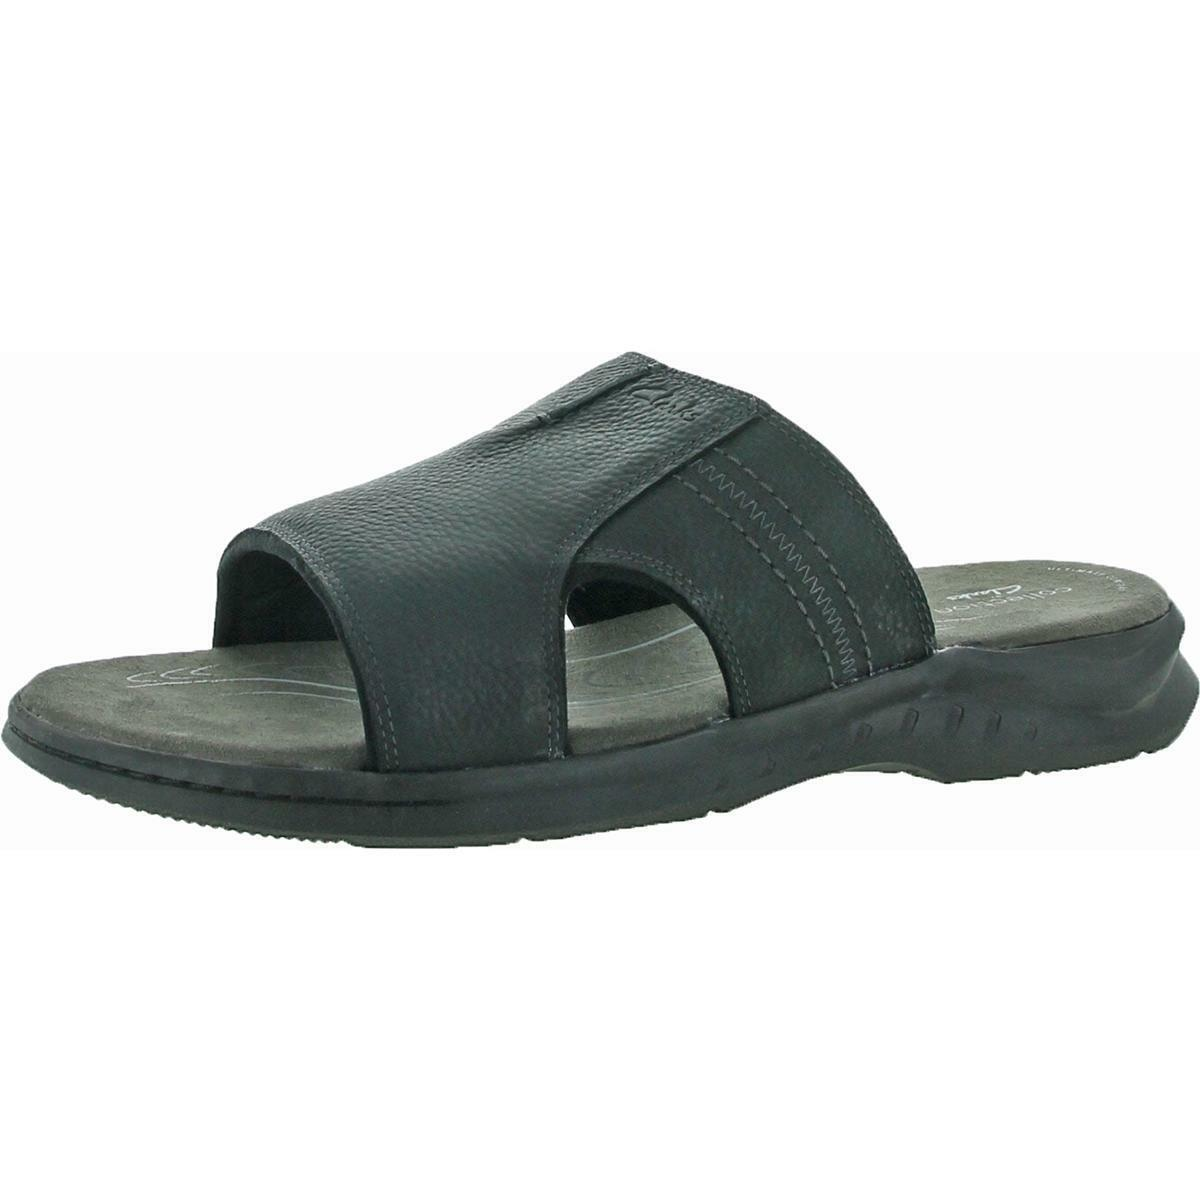 Clarks Hapsford Slide Men's Tumbled Leather Casual Slip On Sandals